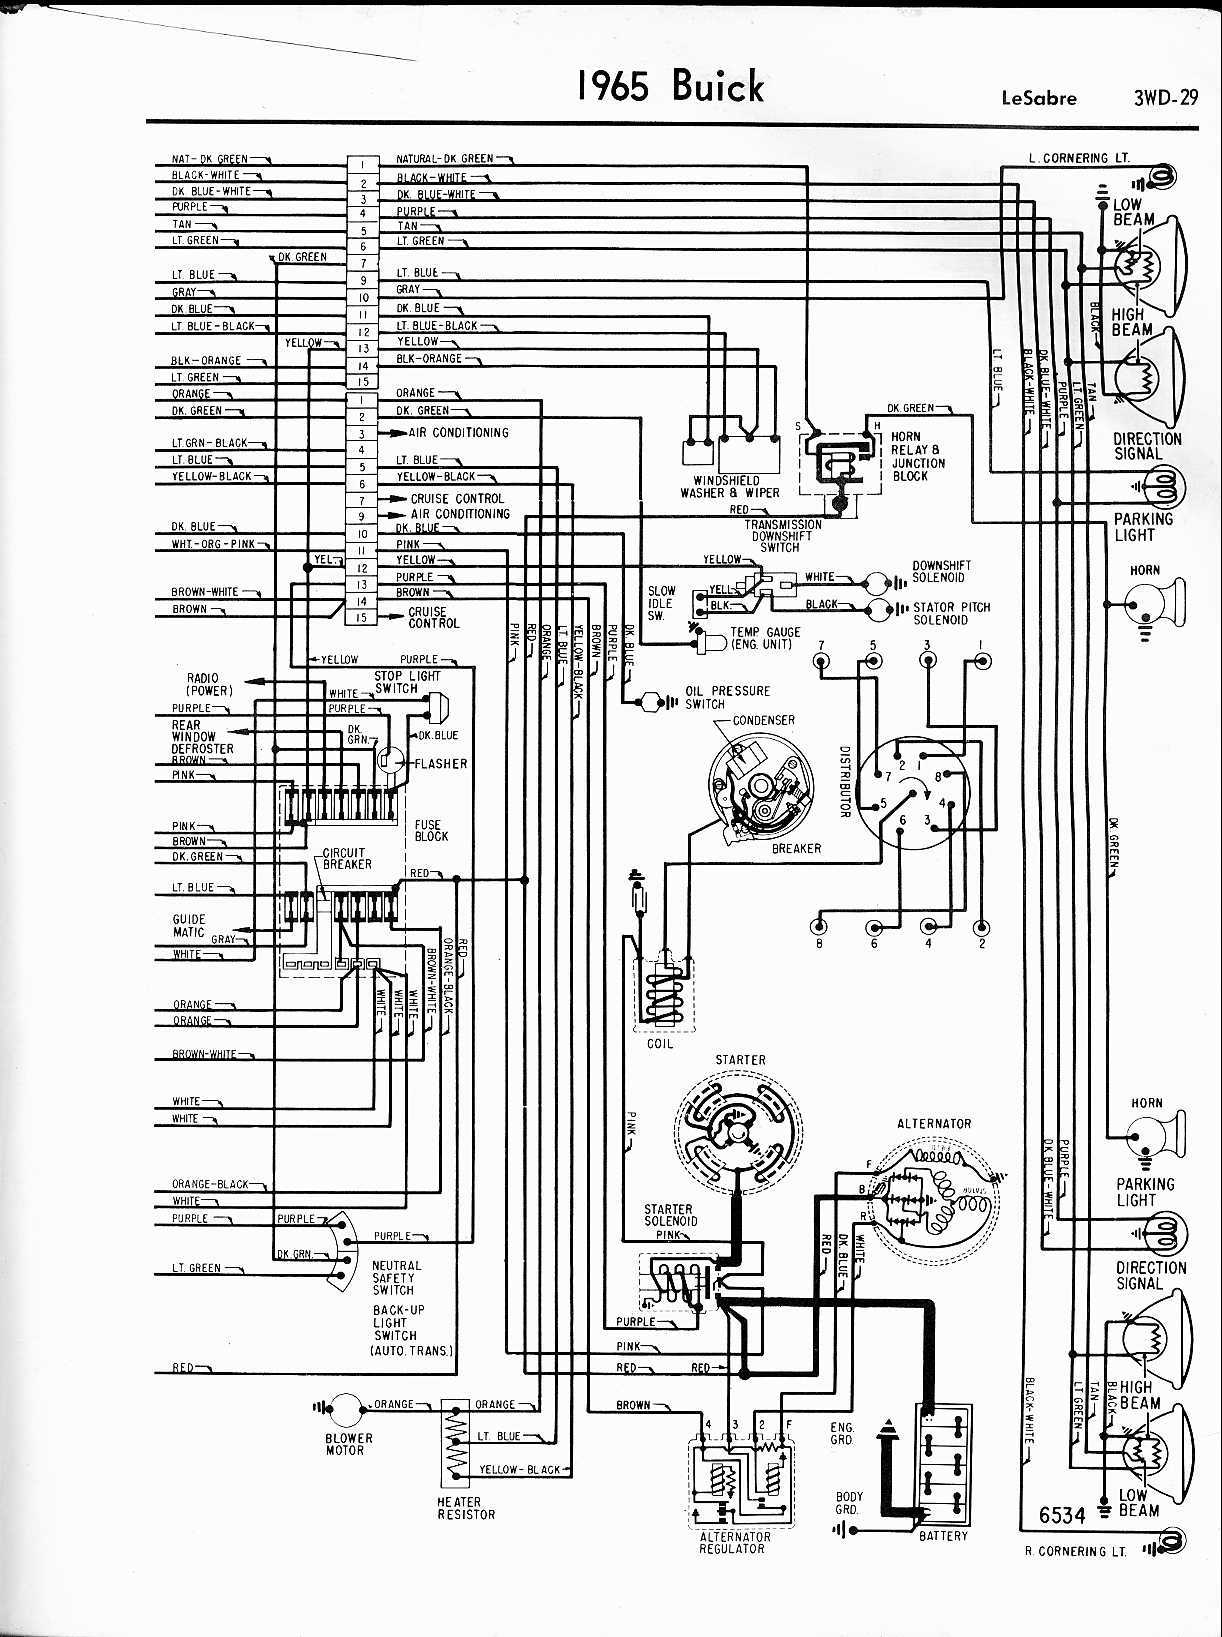 hight resolution of  2005 ford f750 fuse diagram free buick wiring diagrams data schematics wiring diagram u2022 rh xrkarting com 95 buick century wiring